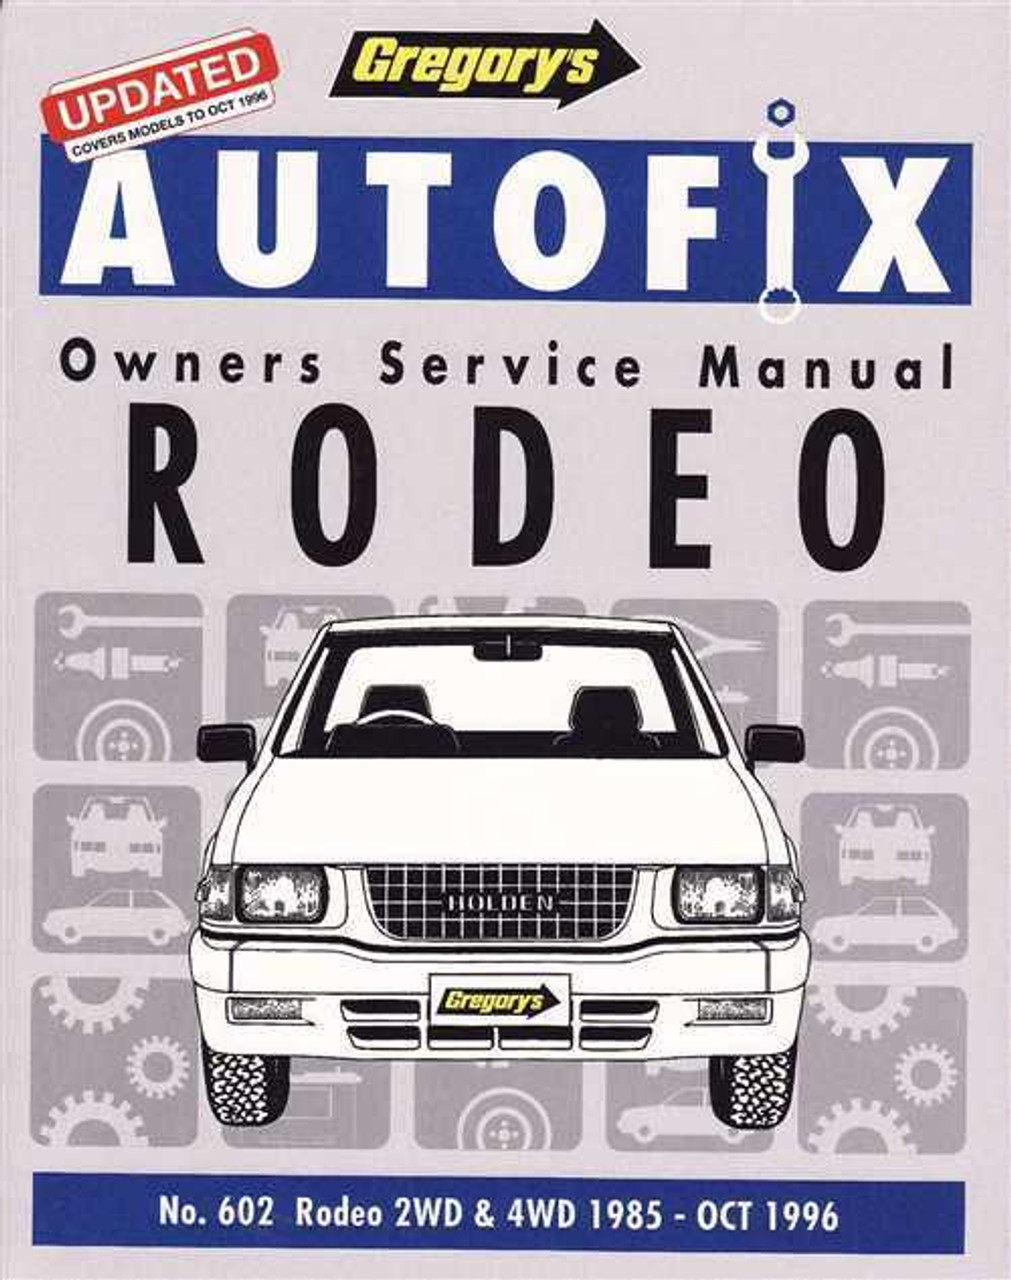 holden rodeo 2wd 4wd petrol 1985 1996 workshop manual rh automotobookshop com au 1990 Holden Rodeo 2007 Holden Rodeo